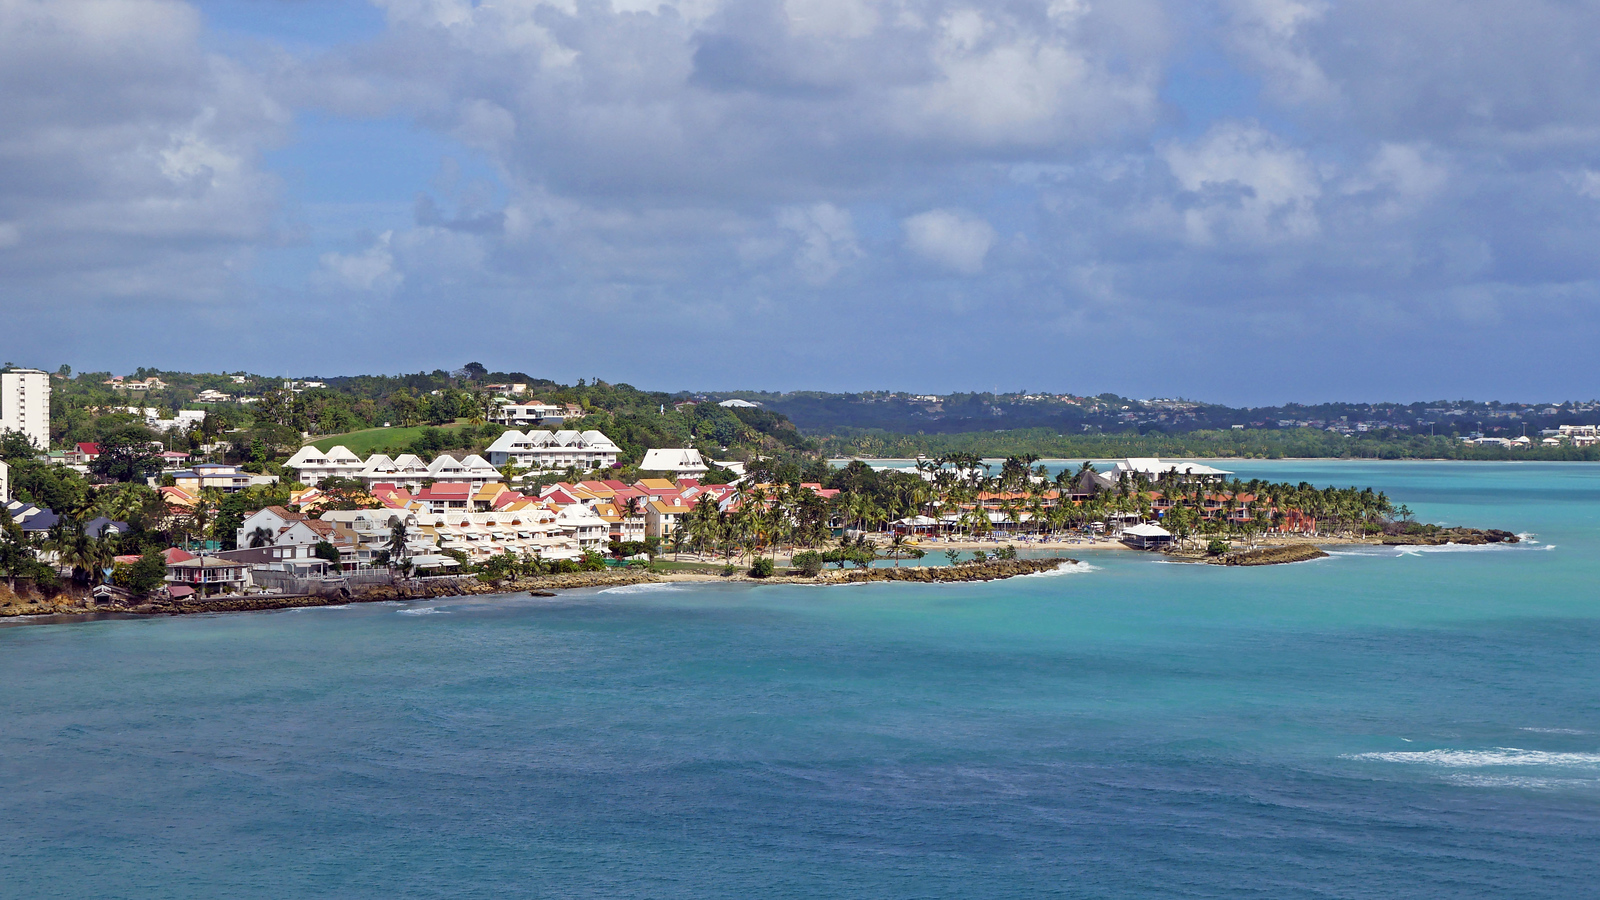 Club Med Guadeloupe - Club Med La Caravelle - A Day Pass to Paradise